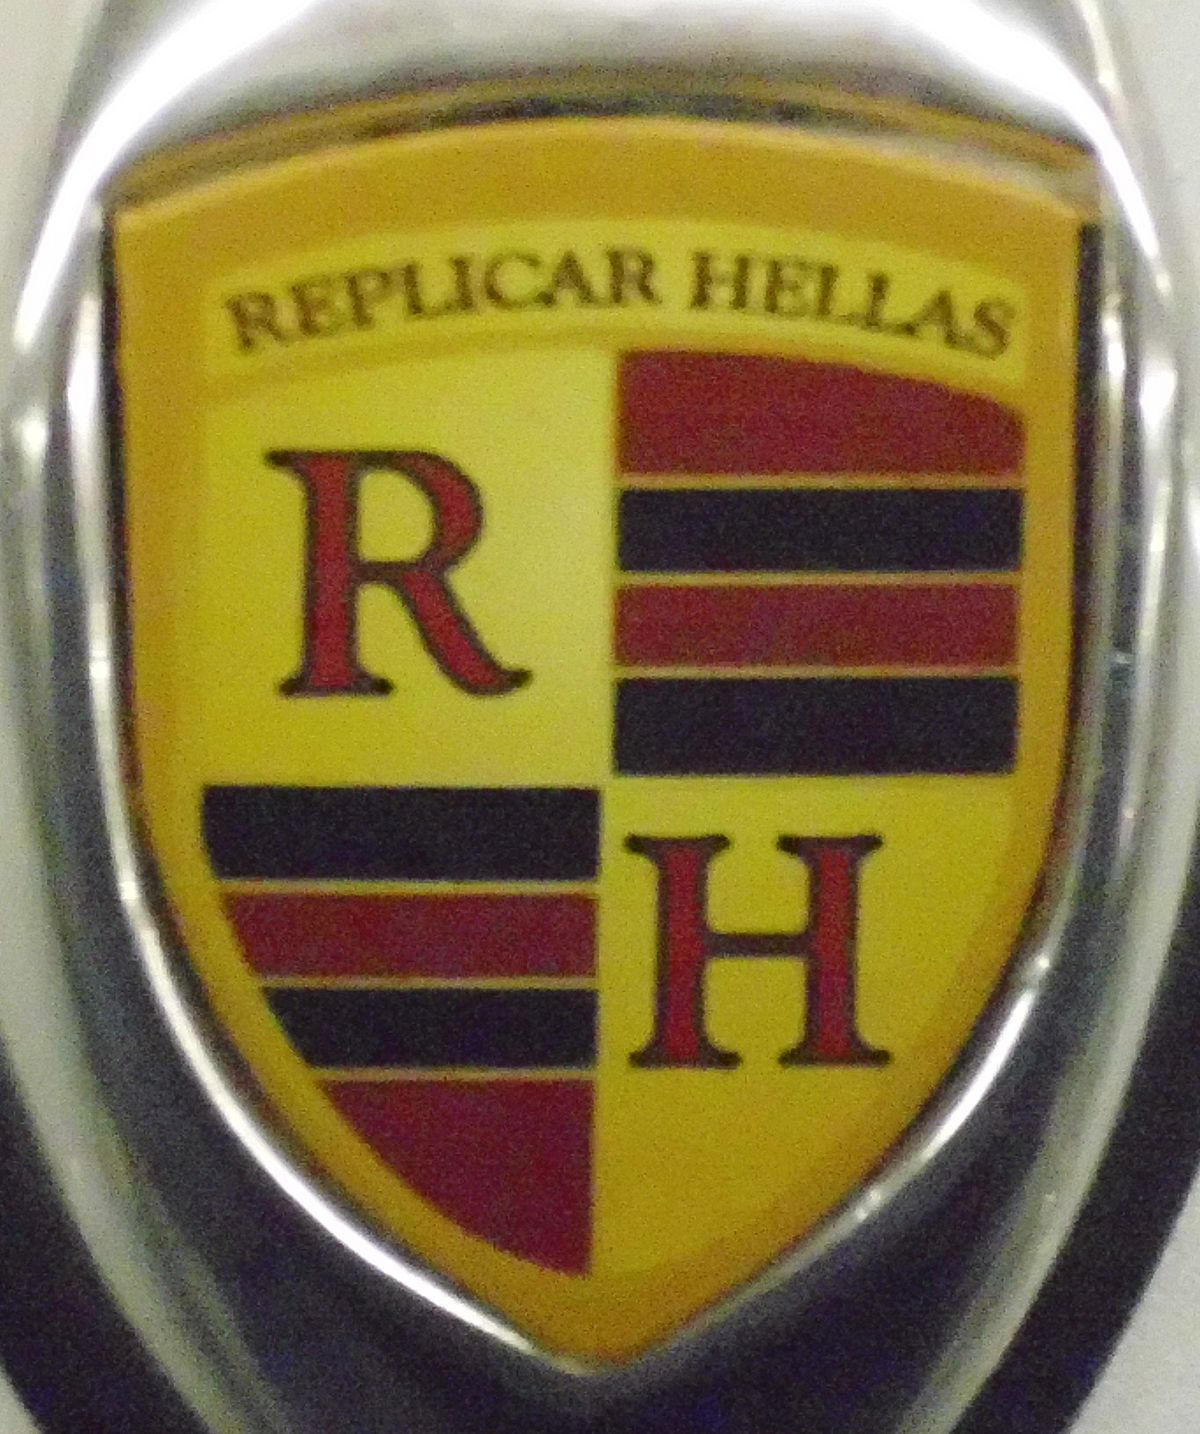 Replicar Hellas Wikipedia